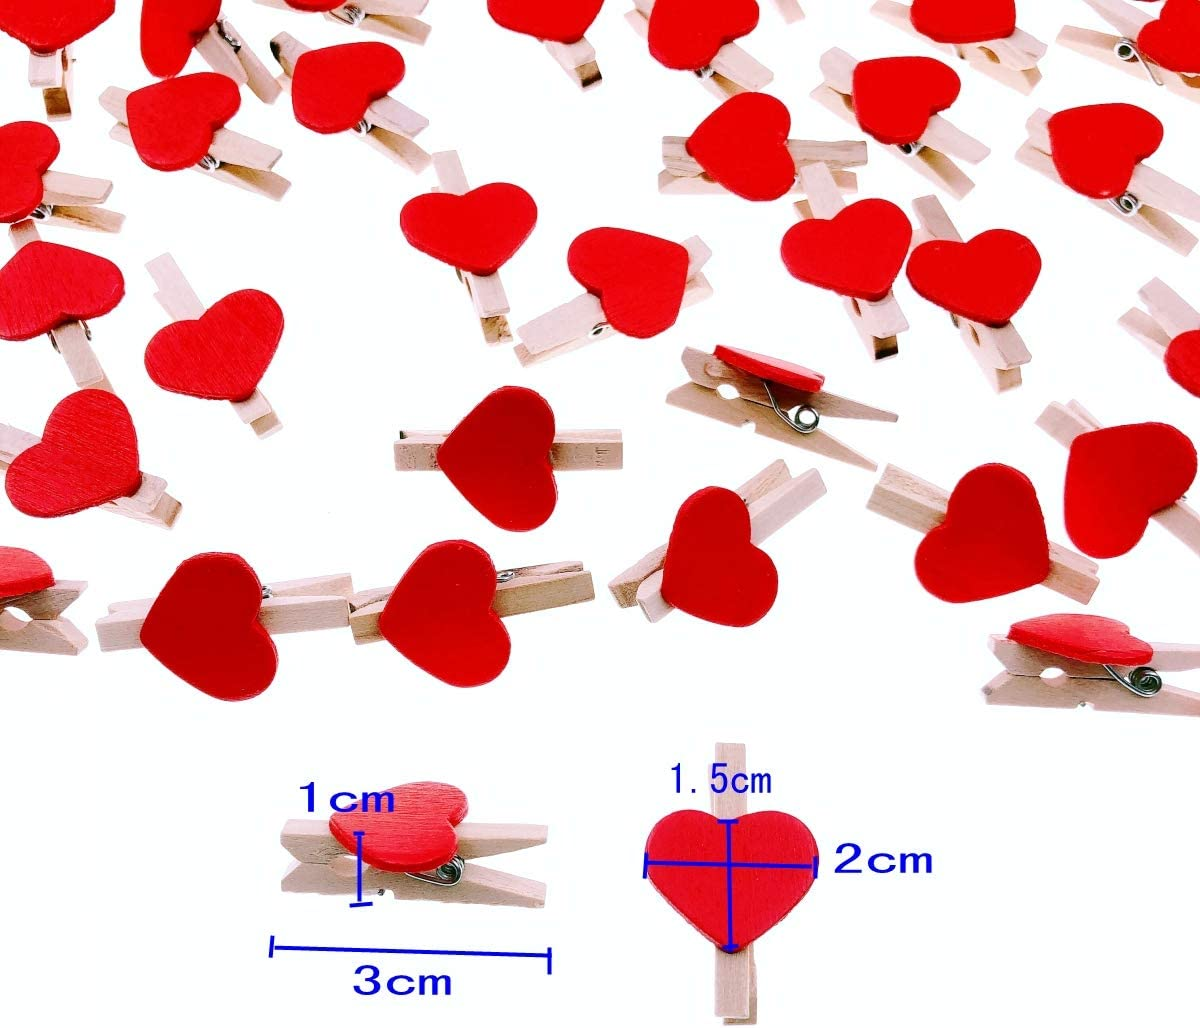 Jute Twine String 30m for Wedding Party Photo Holder Card Decoration and DIY Craft JZK 100 x Mini Wooden Colored Heart pegs 3cm